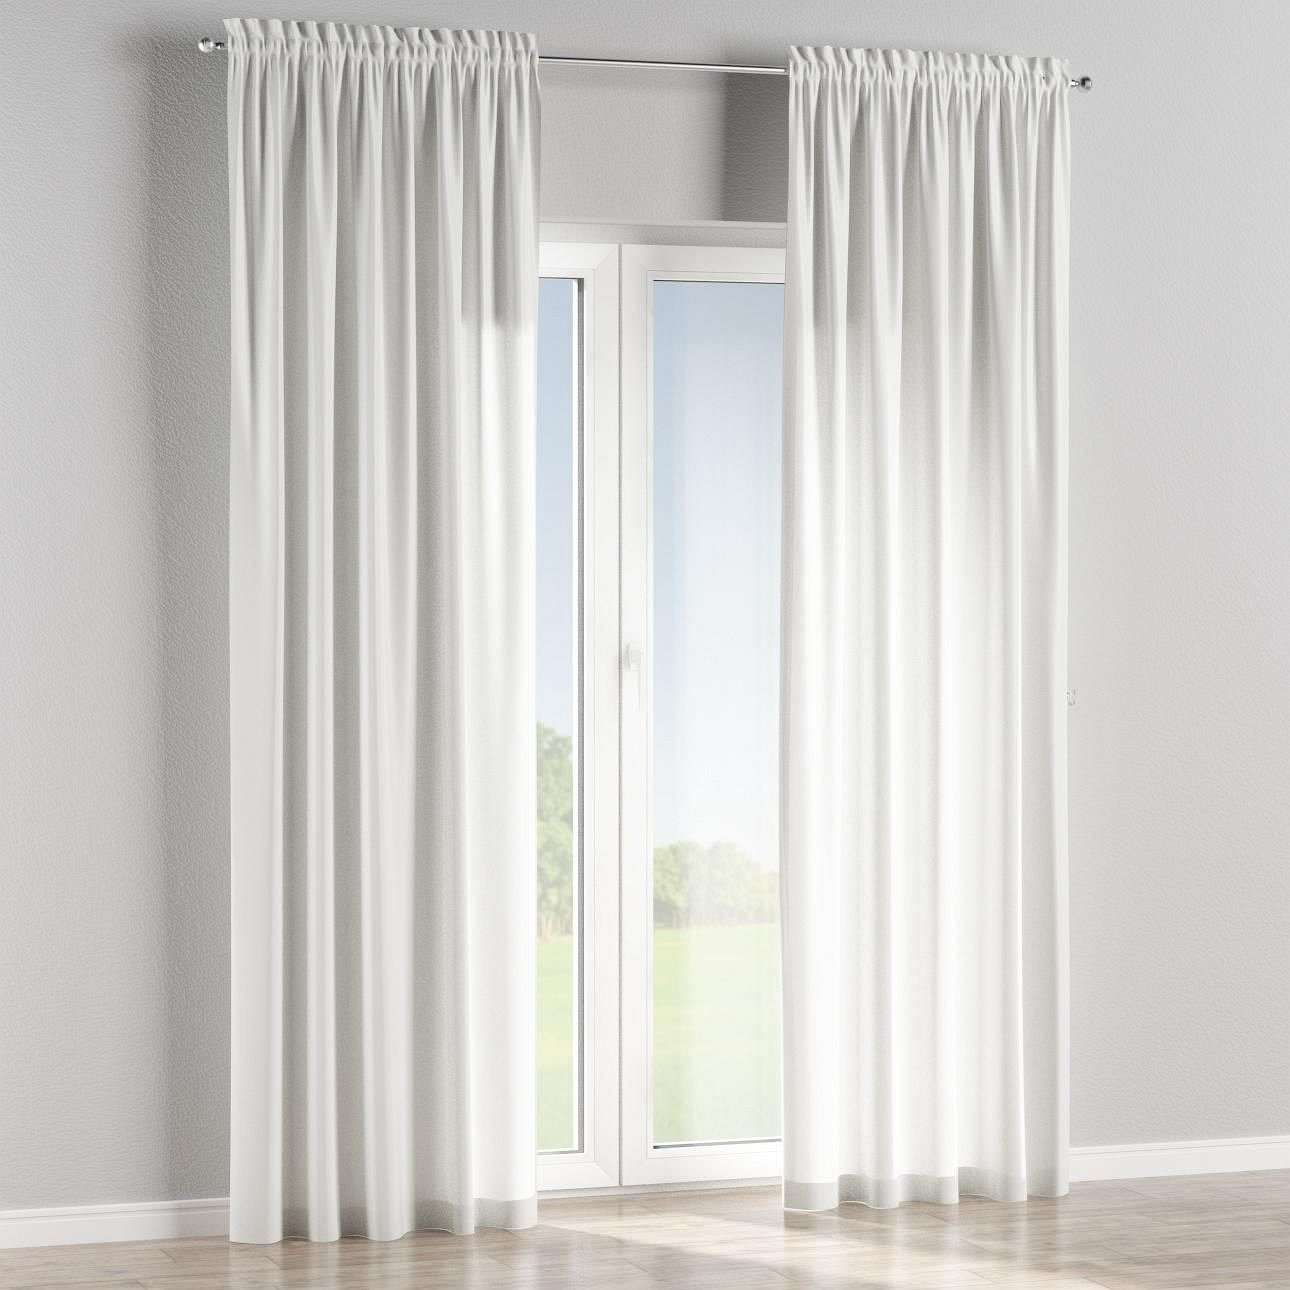 Slot and frill curtains in collection Fleur , fabric: 137-20